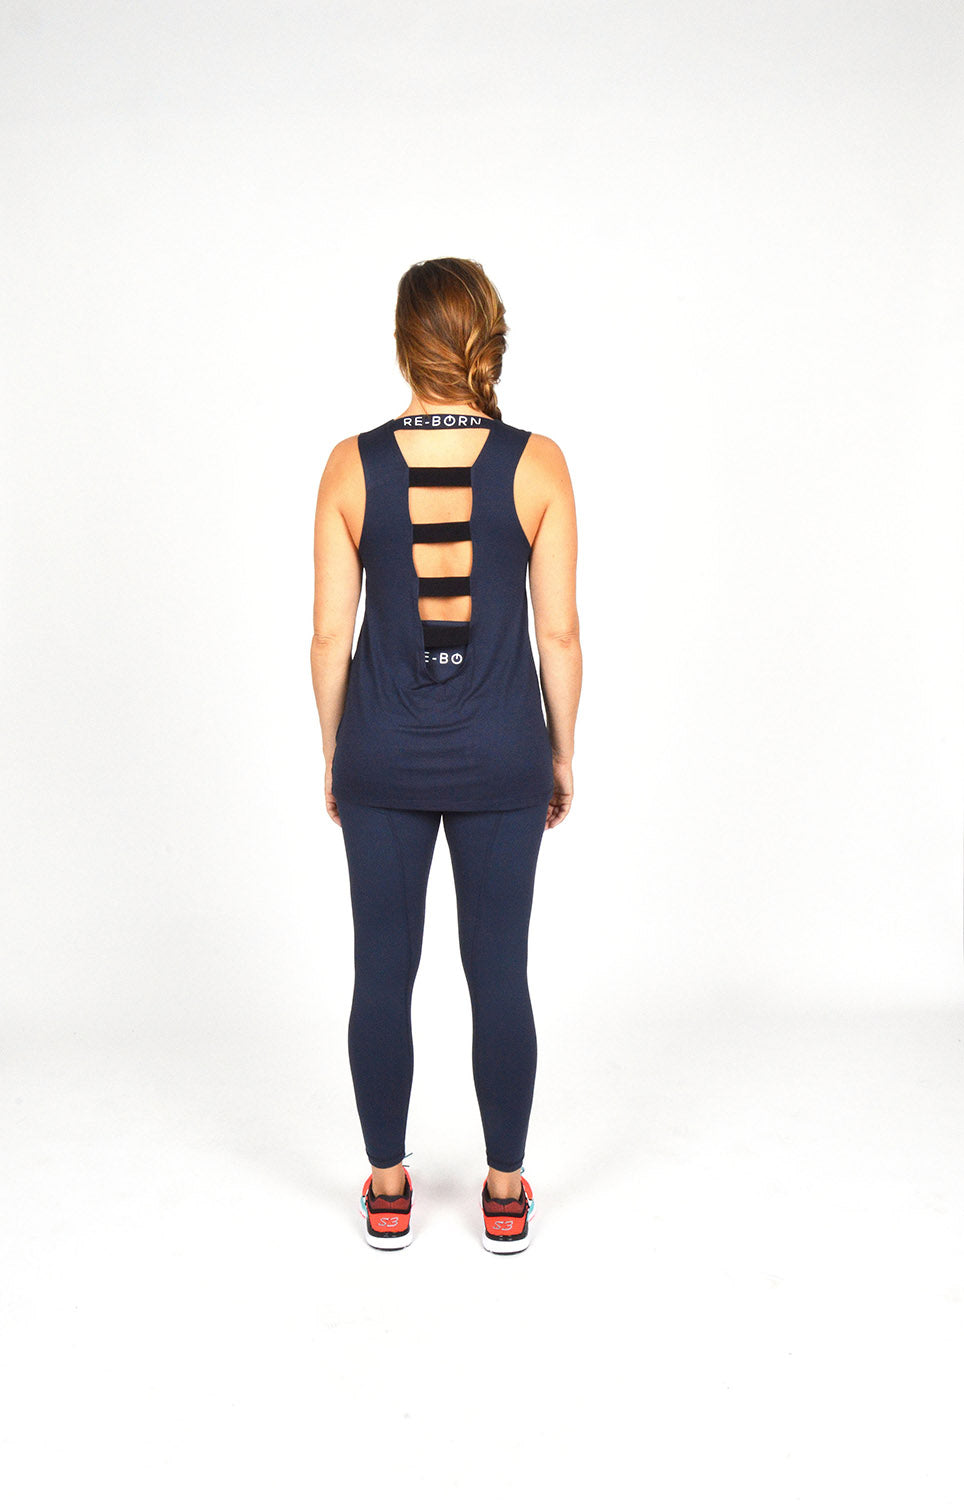 WOMEN ELASTICATED BACK TANK TOP NAVY O-1811-1